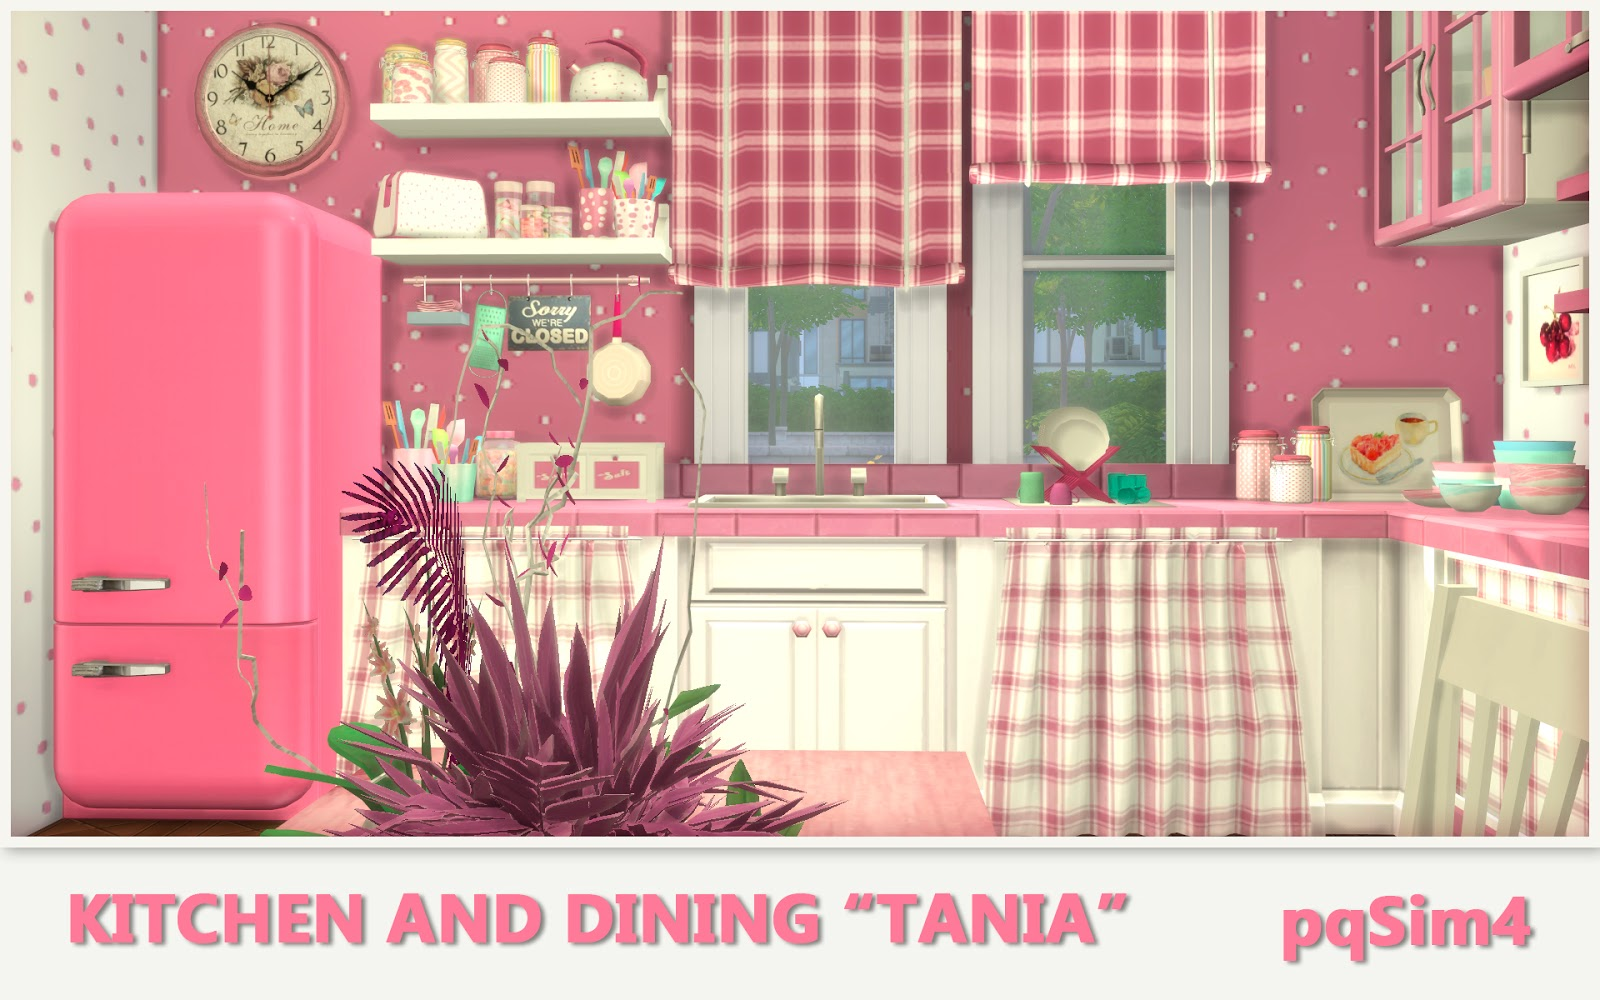 kitchen and dining tania sims 4 custom content. Black Bedroom Furniture Sets. Home Design Ideas